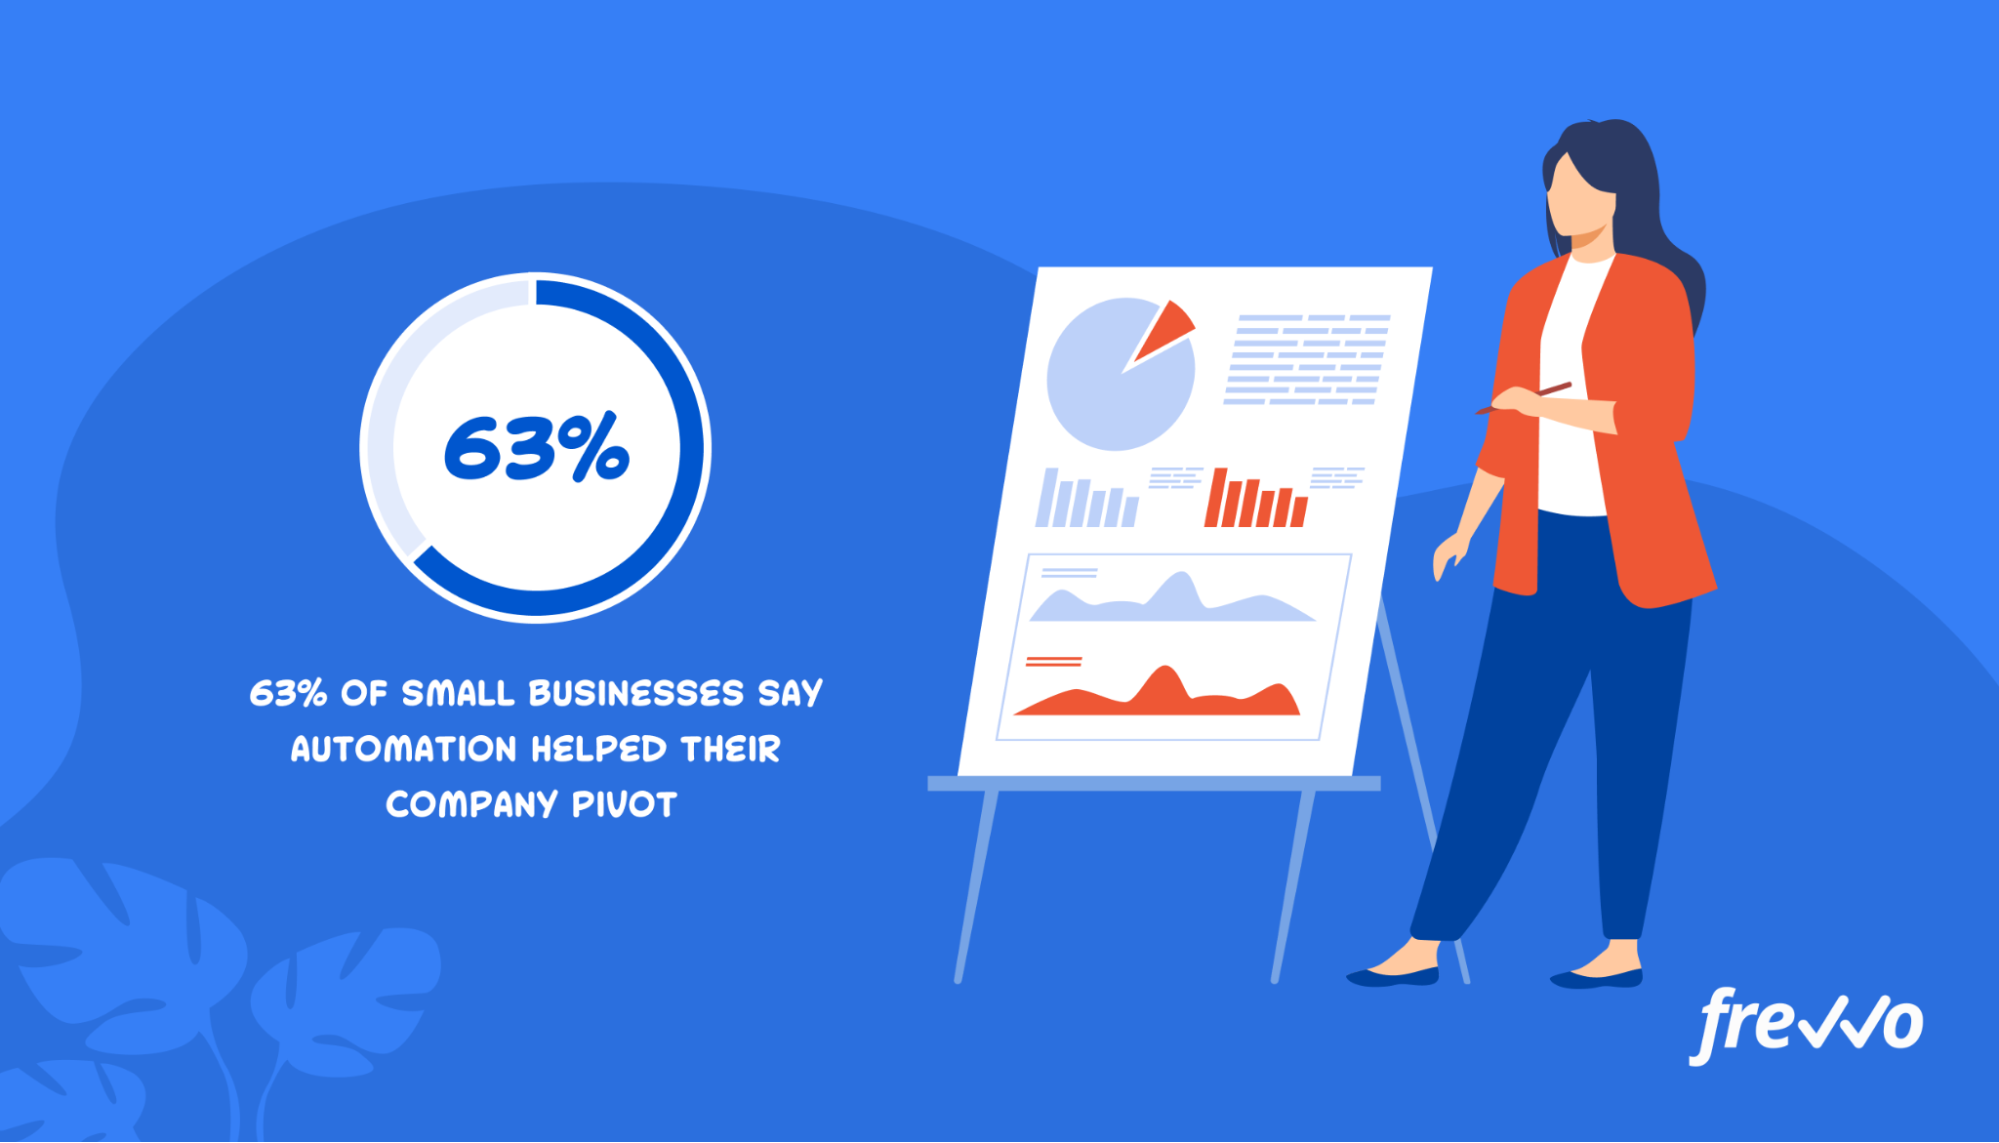 63% of small businesses say automation helped their company pivot